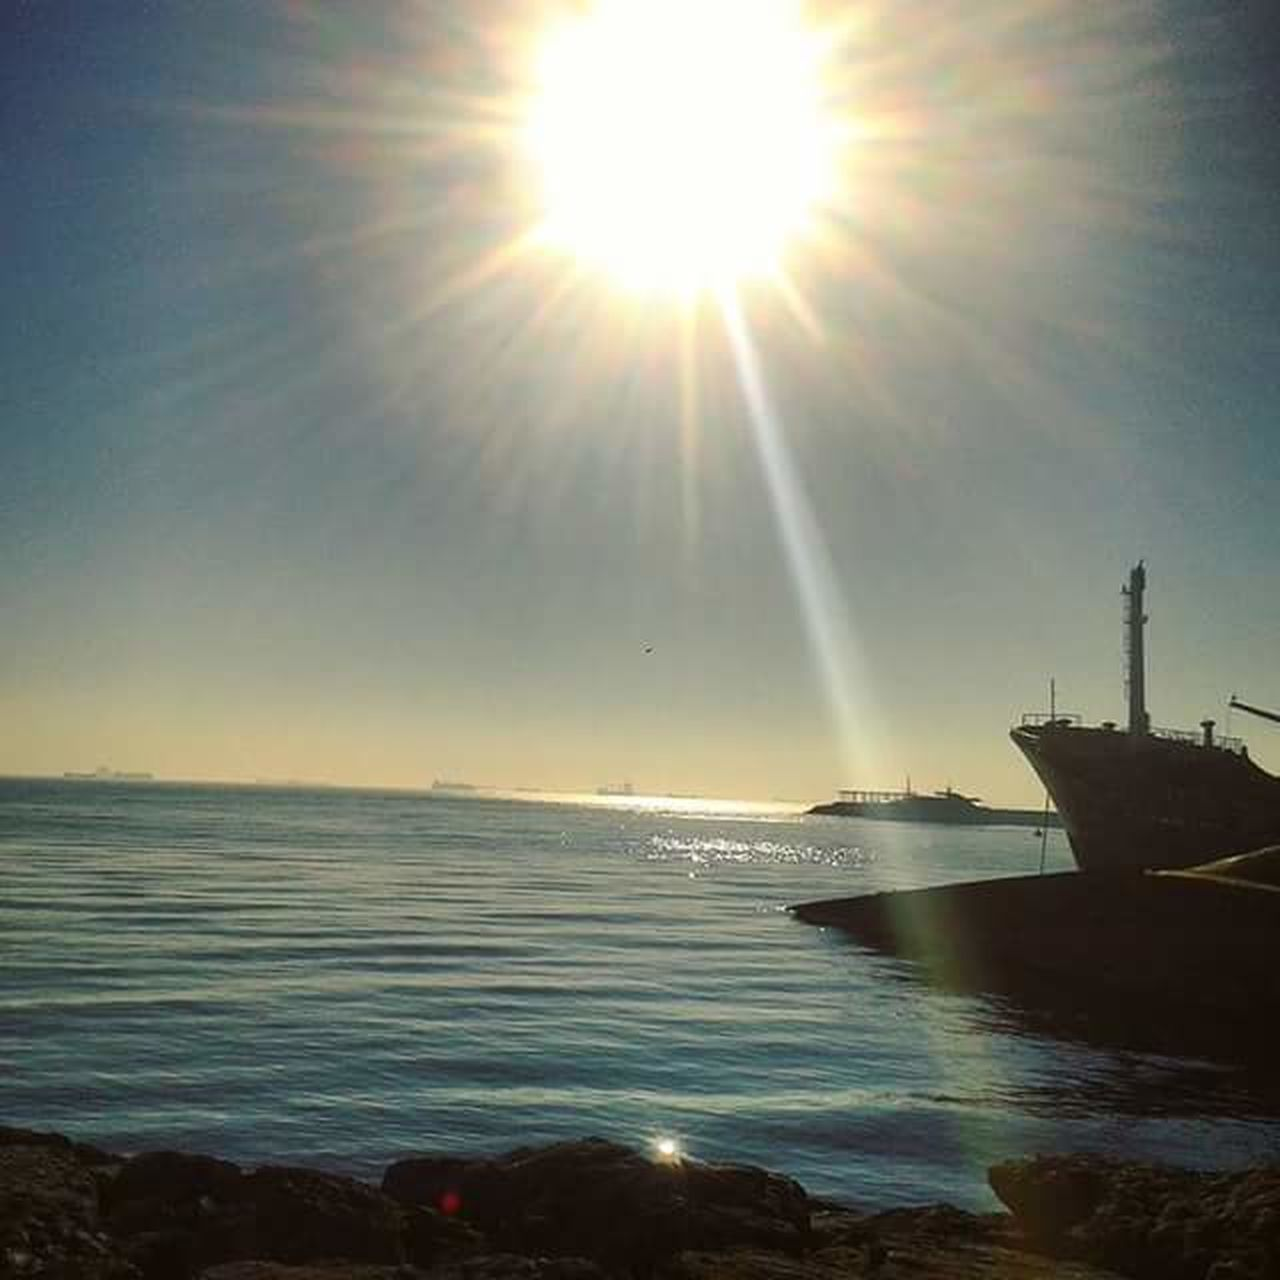 water, sun, sunbeam, sea, lens flare, sunlight, beauty in nature, nature, sky, bright, horizon over water, scenics, no people, outdoors, nautical vessel, beach, day, wave